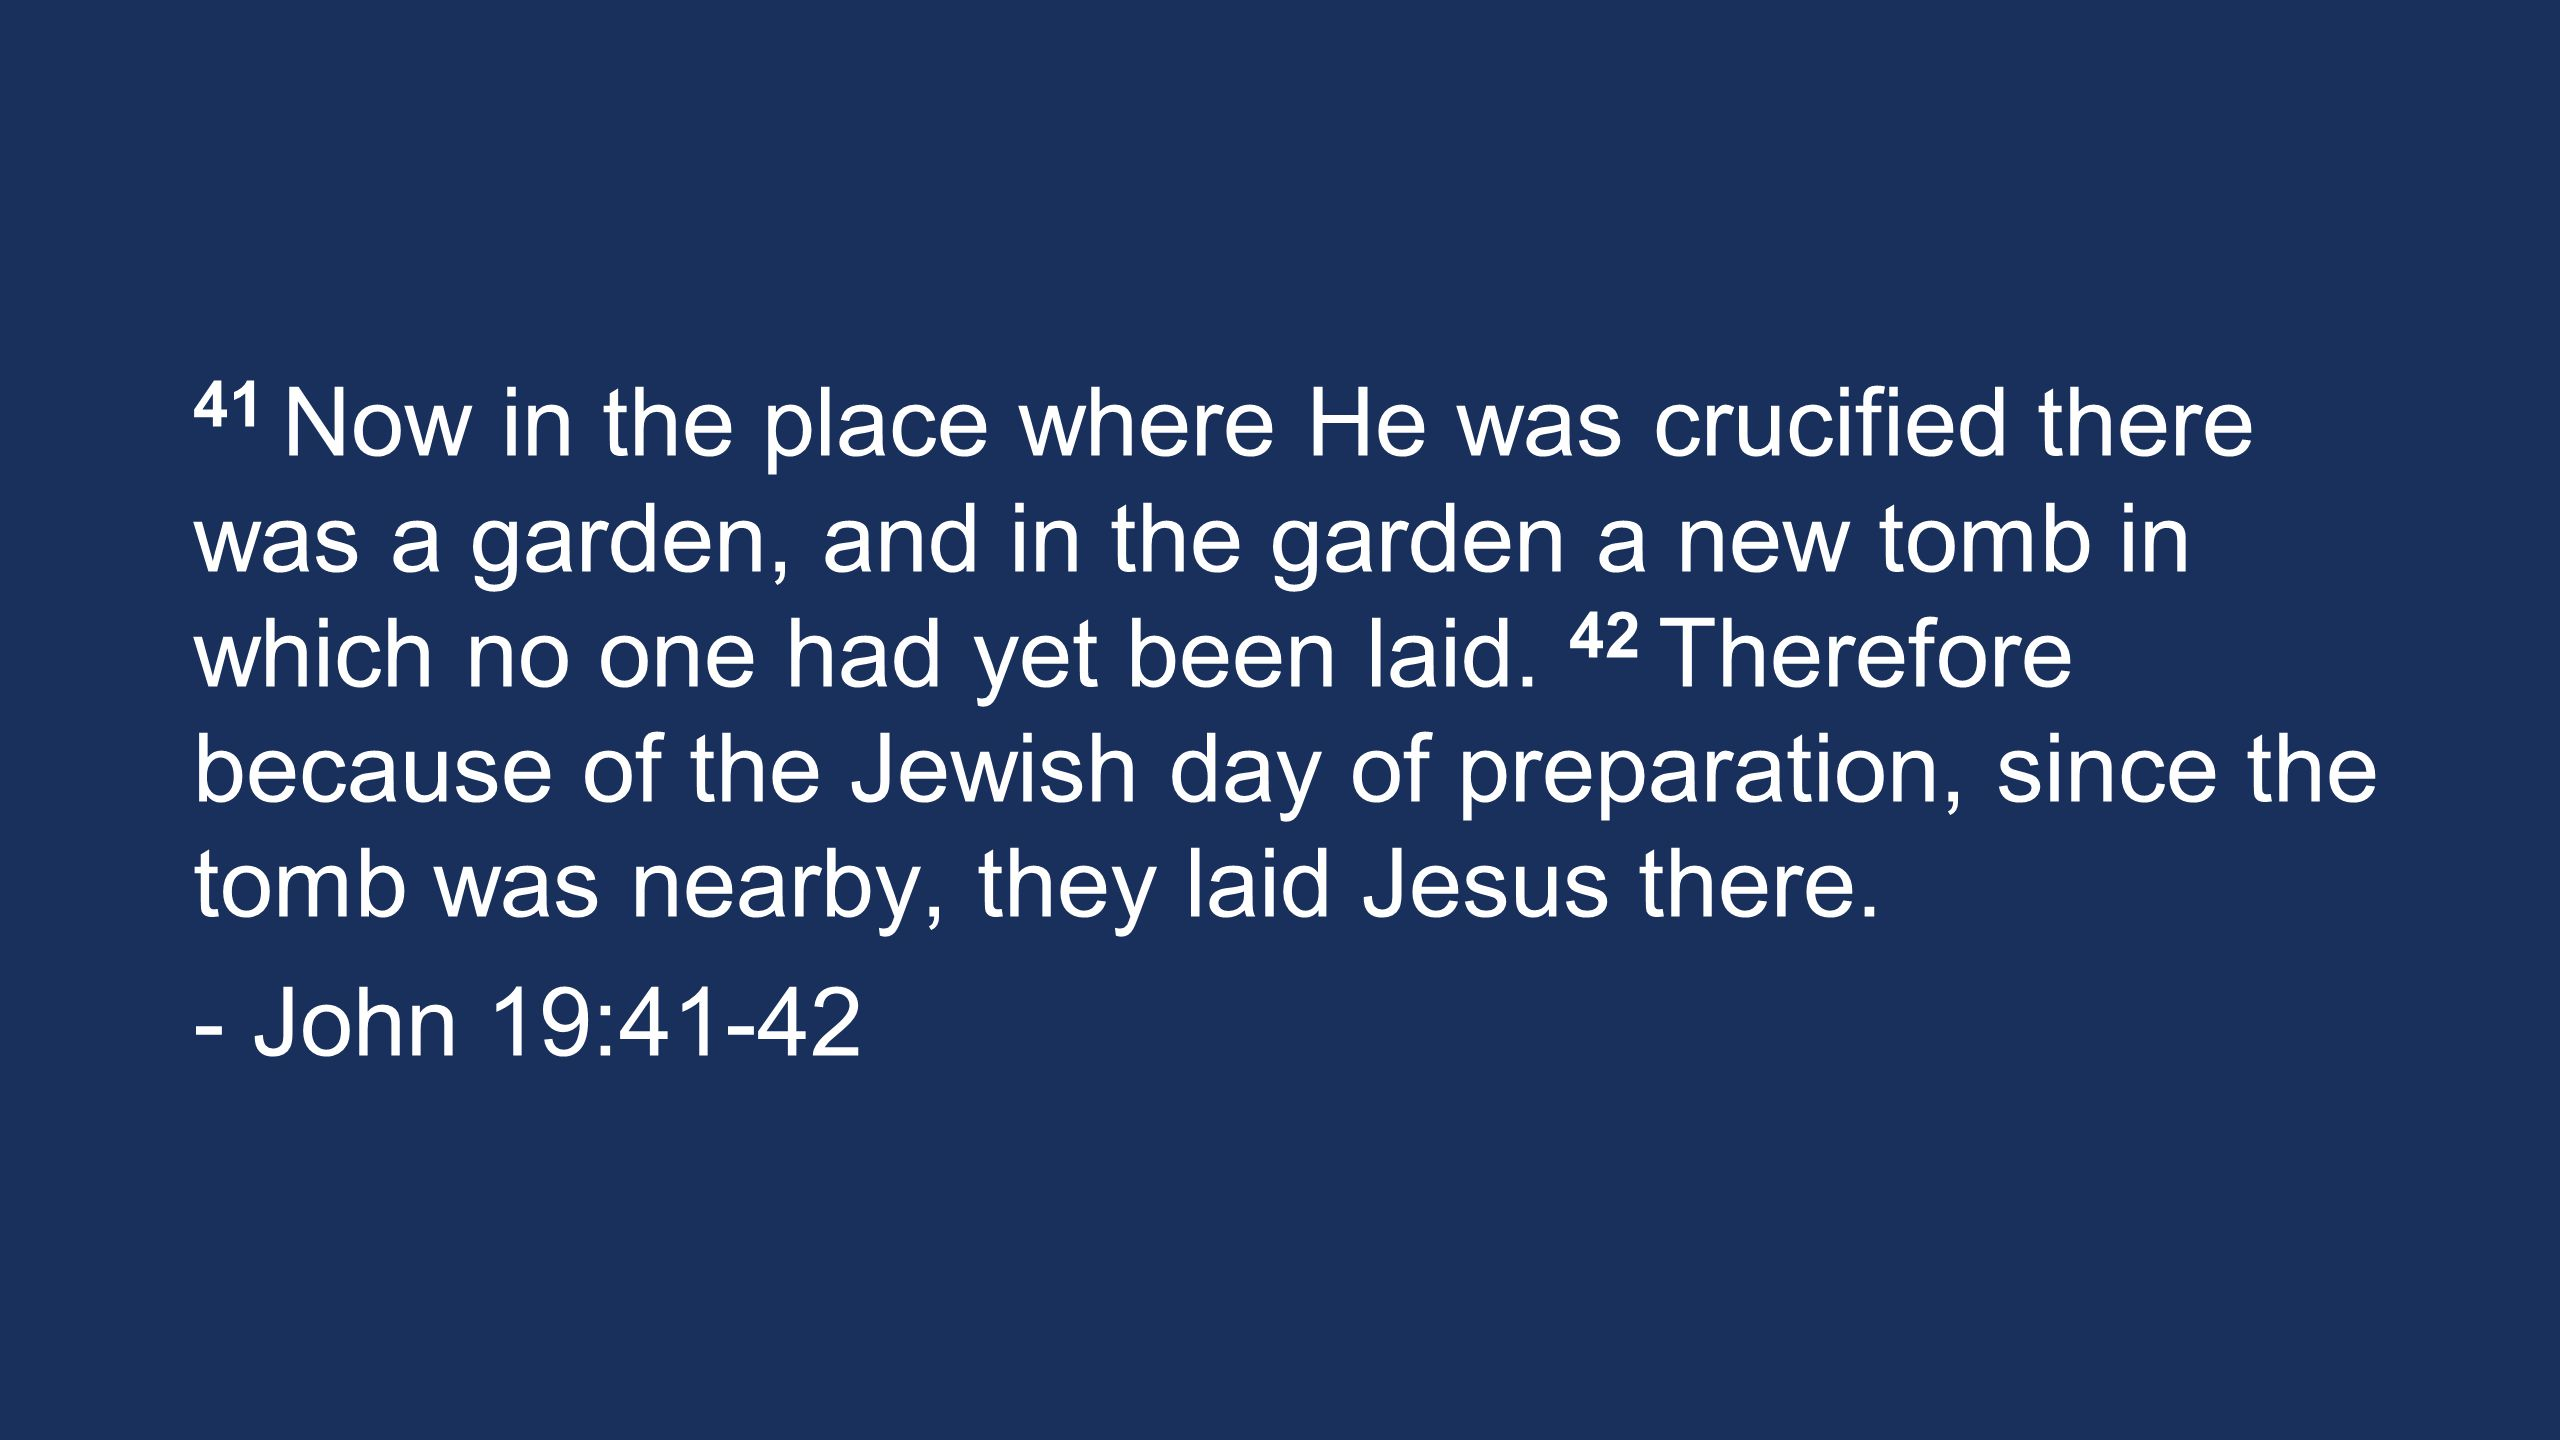 41 Now in the place where He was crucified there was a garden, and in the garden a new tomb in which no one had yet been laid. 42 Therefore because of